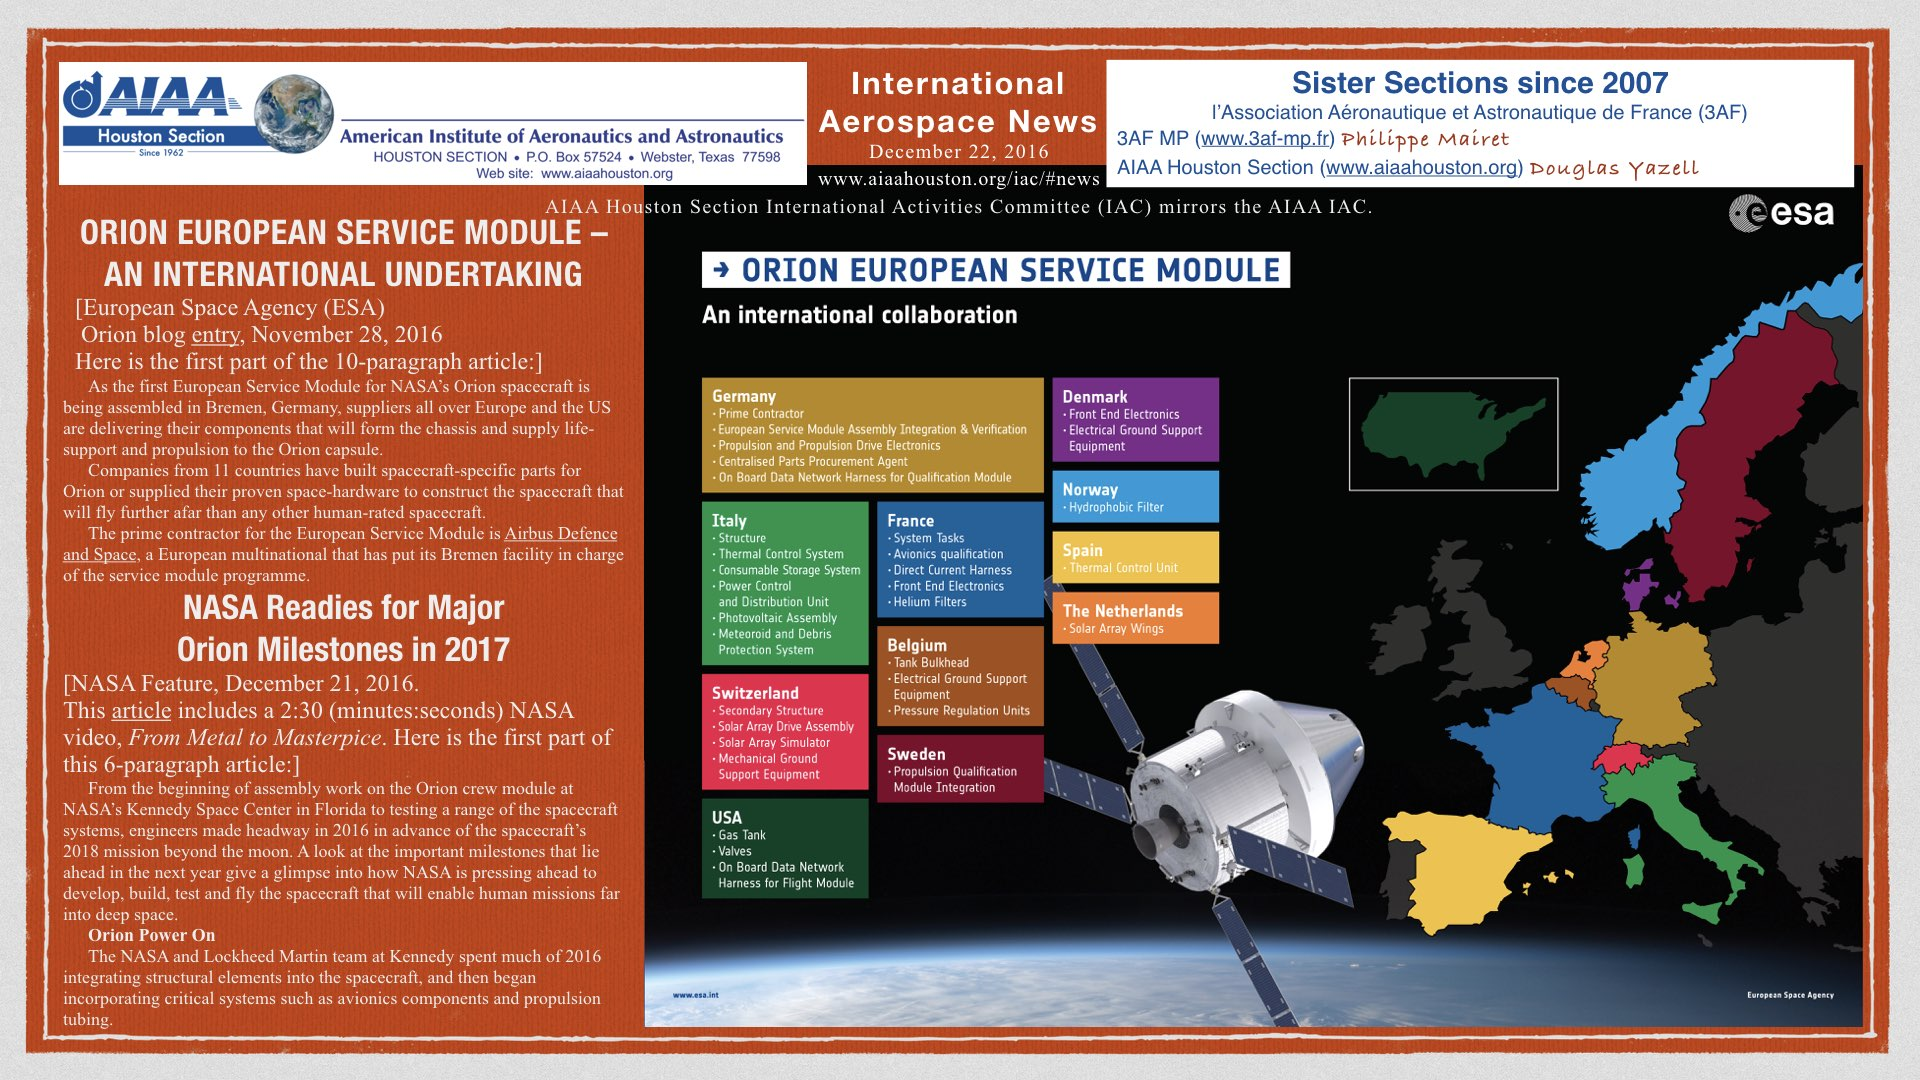 Above: ORION EUROPEAN SERVICE MODULE – AN INTERNATIONAL UNDERTAKING. (Click to zoom.)